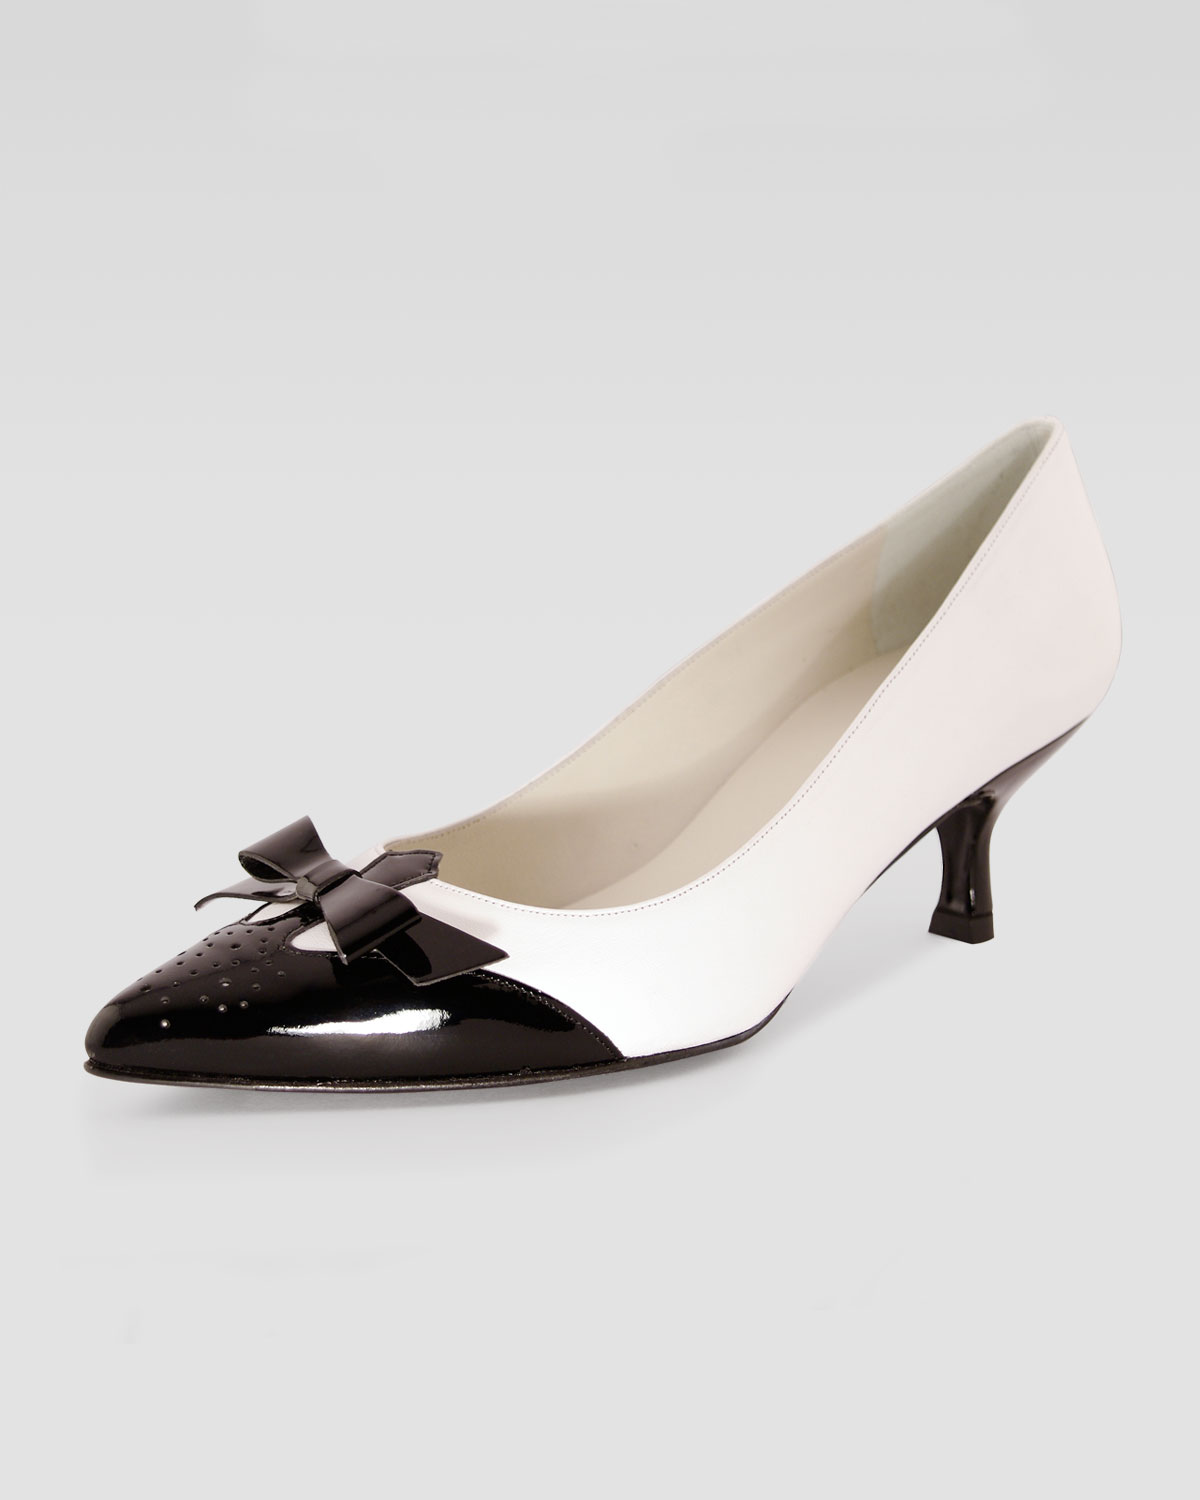 Black And White Kitten Heels 9XC2nUmo